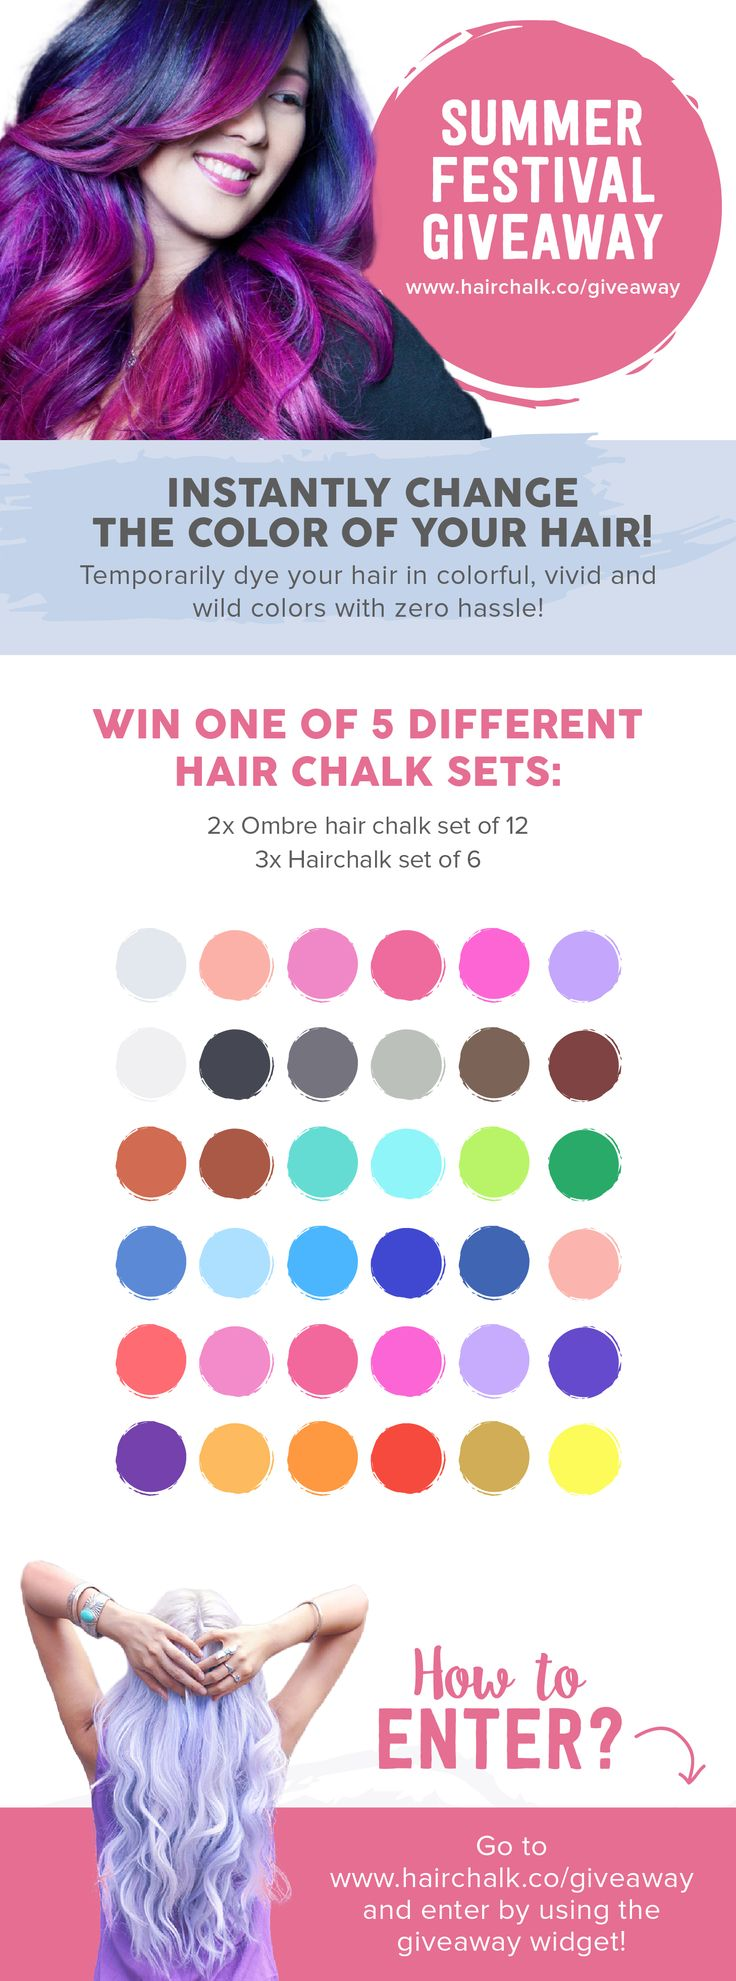 Festival Hair Chalk Giveaway - Win a free ombre hair chalk set